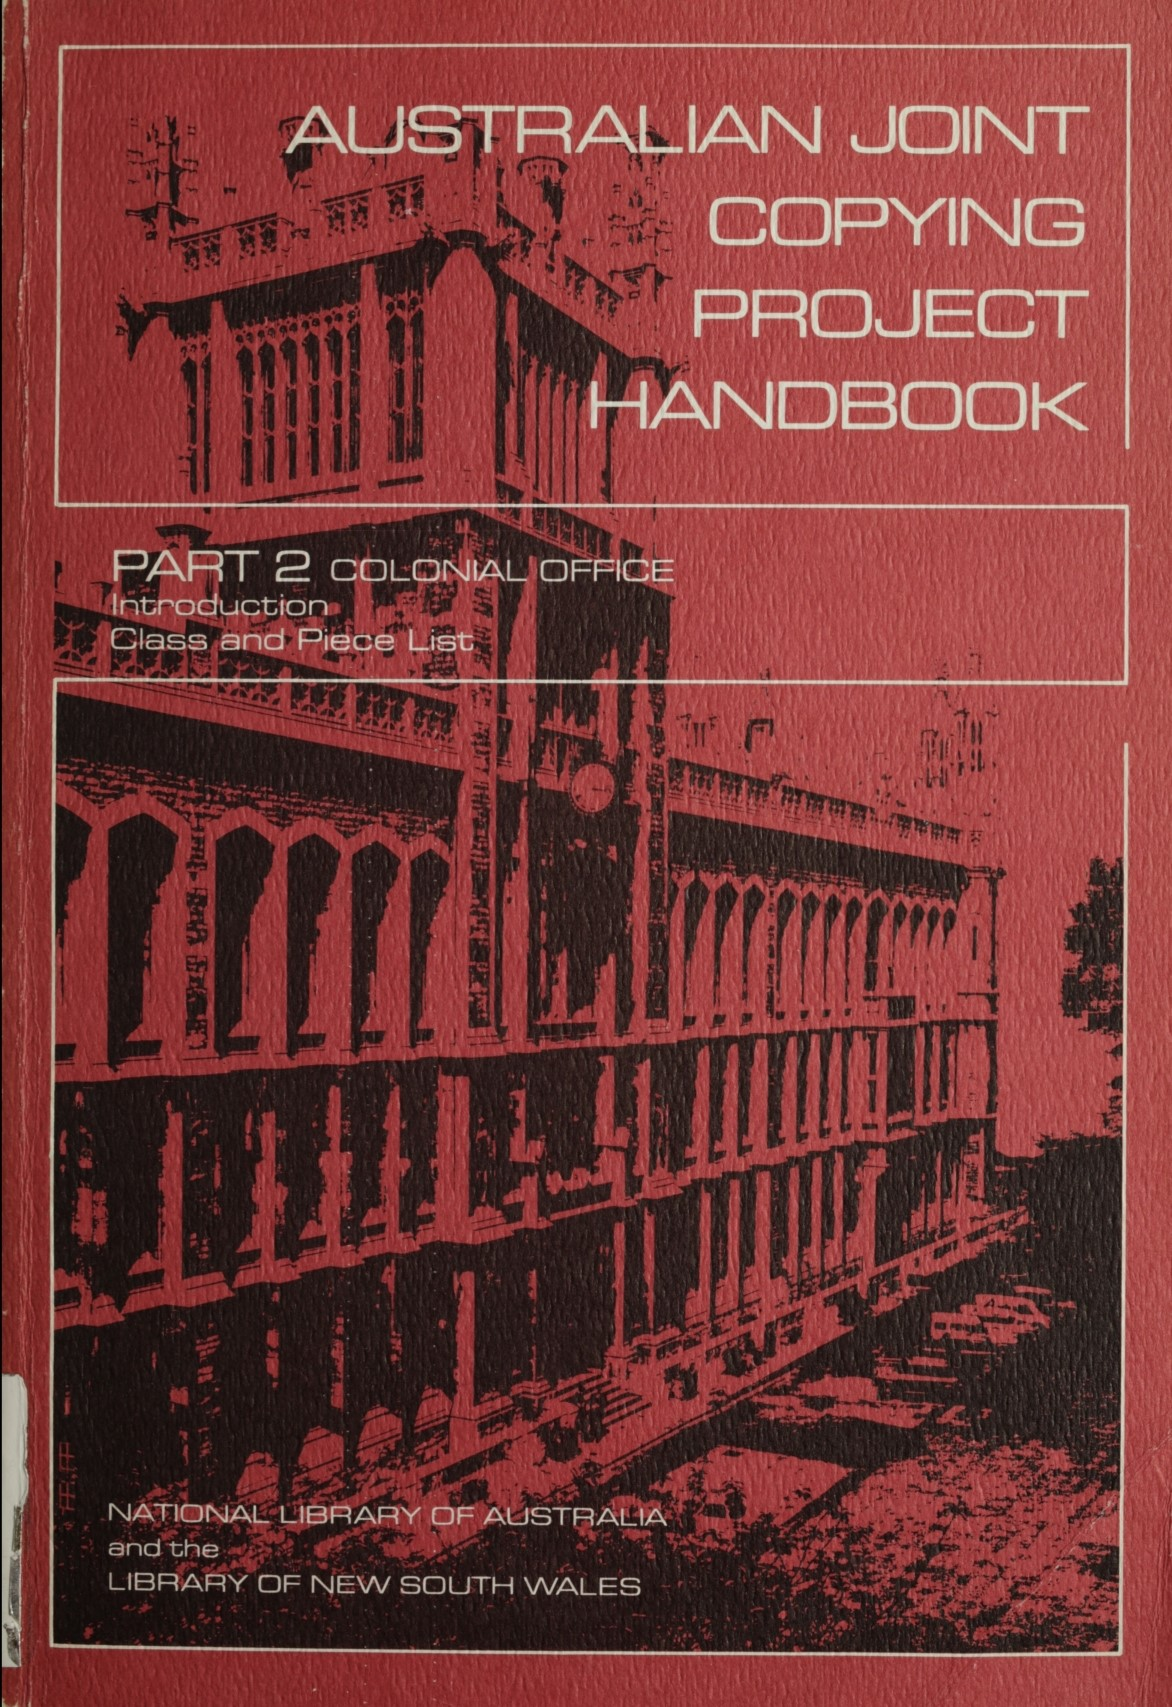 Australian Joint Copying Project handbook. Part 2 : Colonial Office - class and piece list / National Library of Australia and the State Library of New South Wales